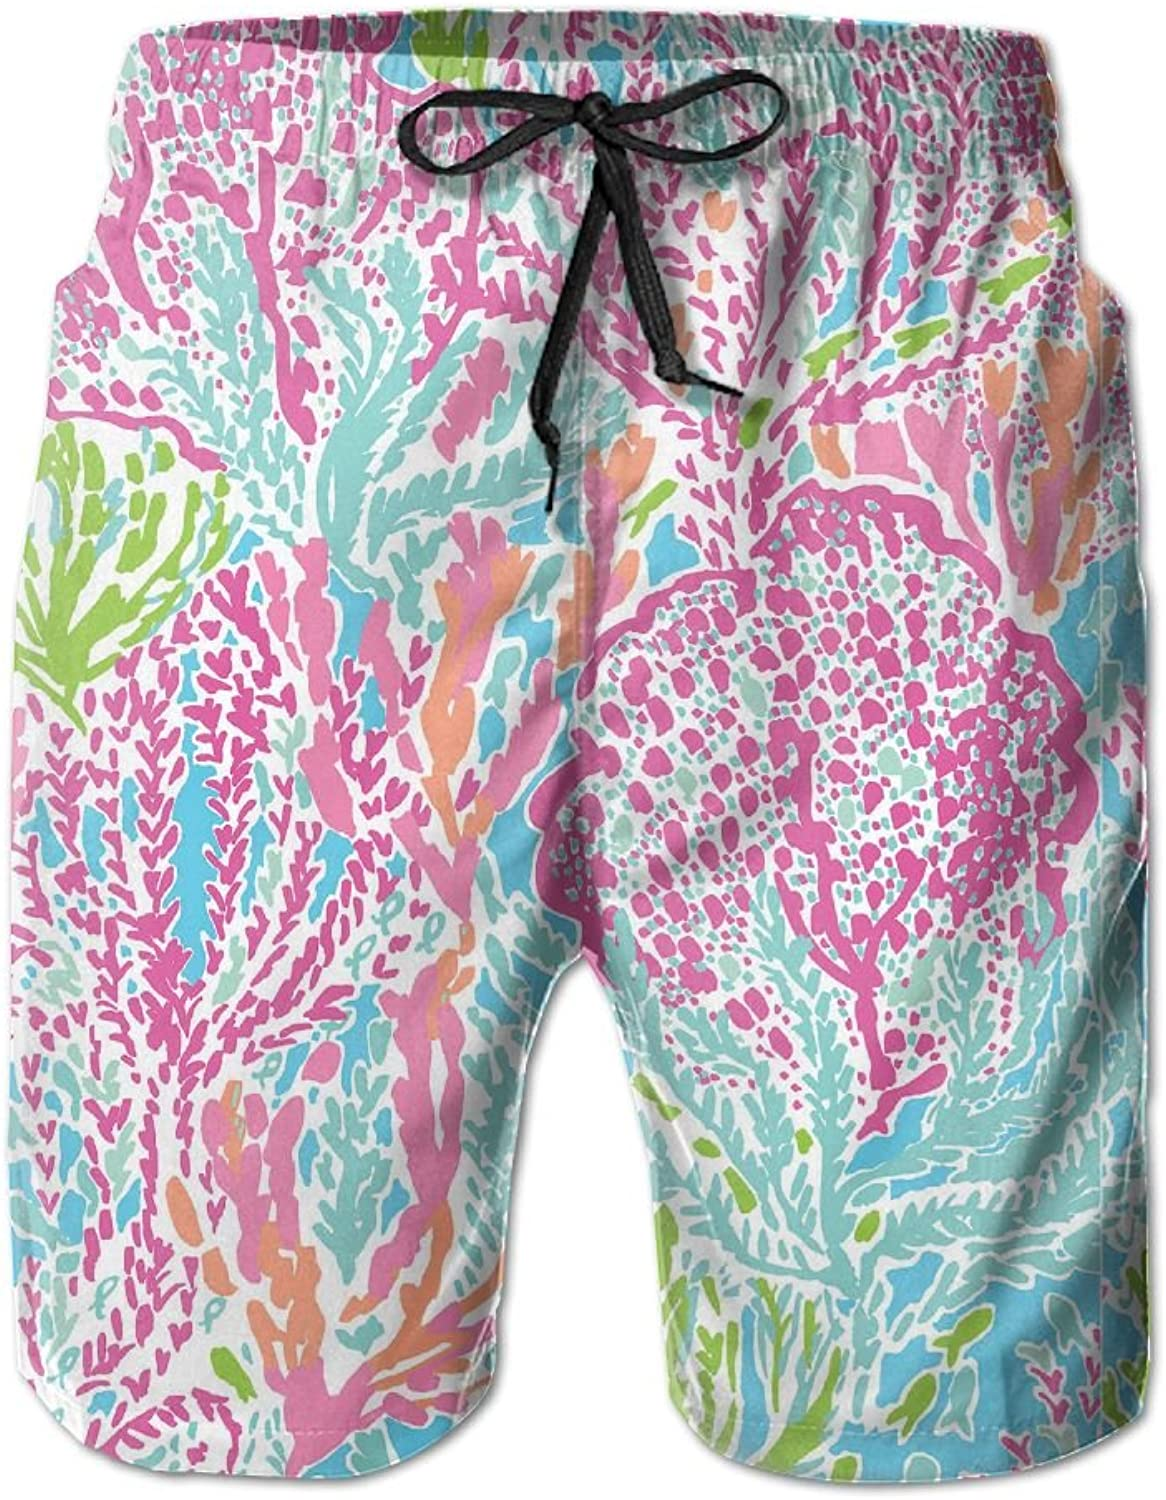 0b326a5201 Quick Quick Quick Dry Men's Beach Board Shorts Pink Lilly Watercolor  Painting Surfing Swim Trunks Beachwear With Pockets 24b0e1